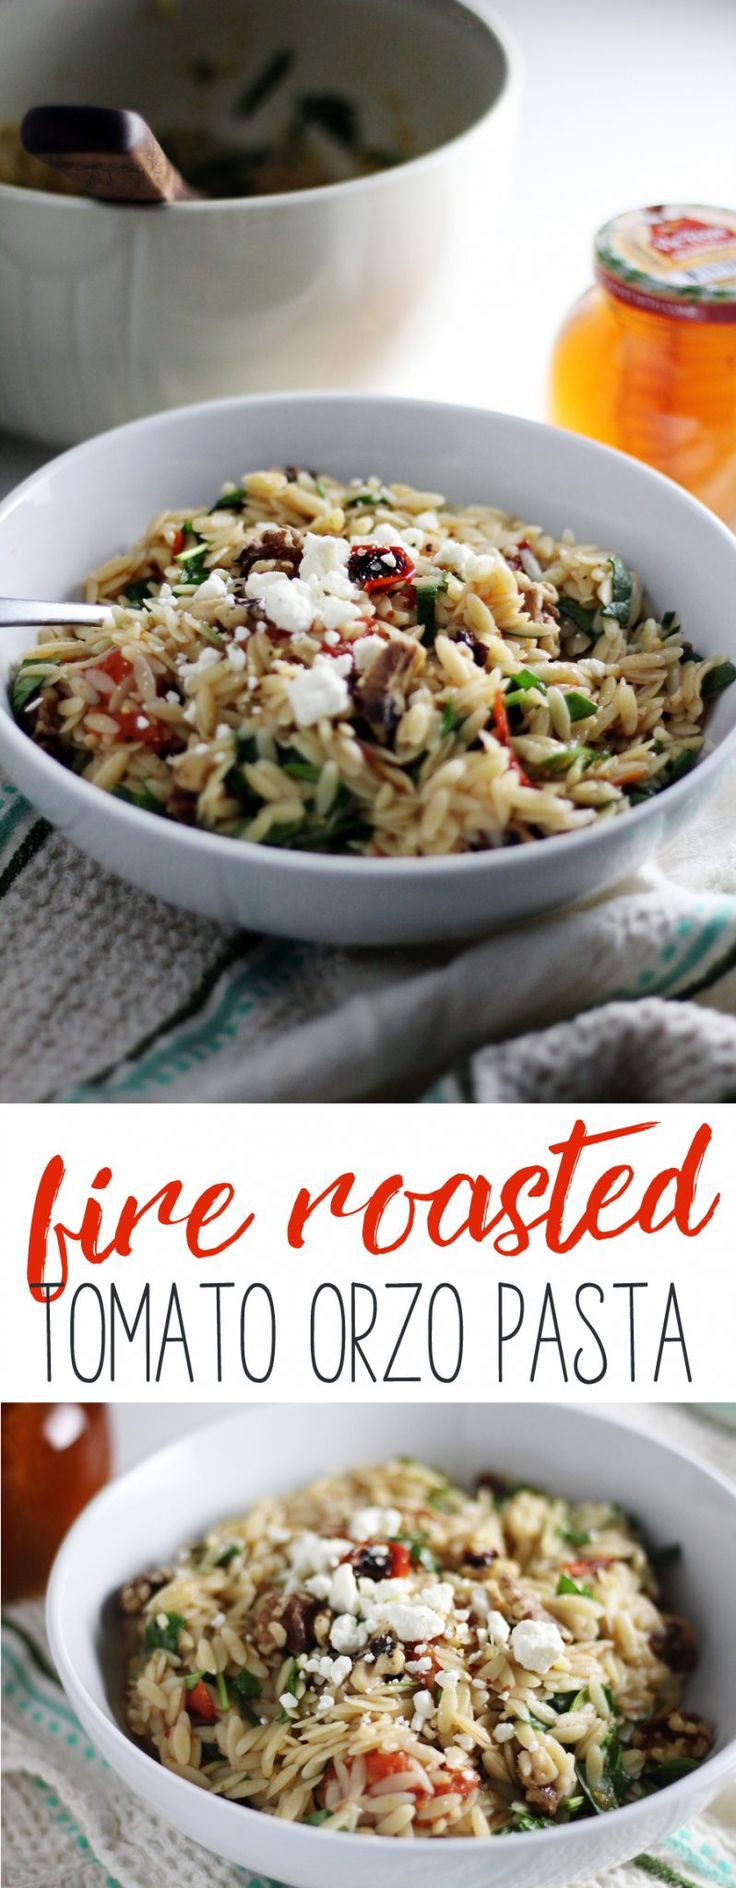 Fire Roasted Tomato Orzo Pasta #ad You have to try this amazing orzo pasta salad with a sweet + tangy honey lemon dressing, tossed with fire roasted tomatoes, fresh spinach, walnuts and feta cheese. So delicious! #DonVictorHoney #happyhealthyhoney